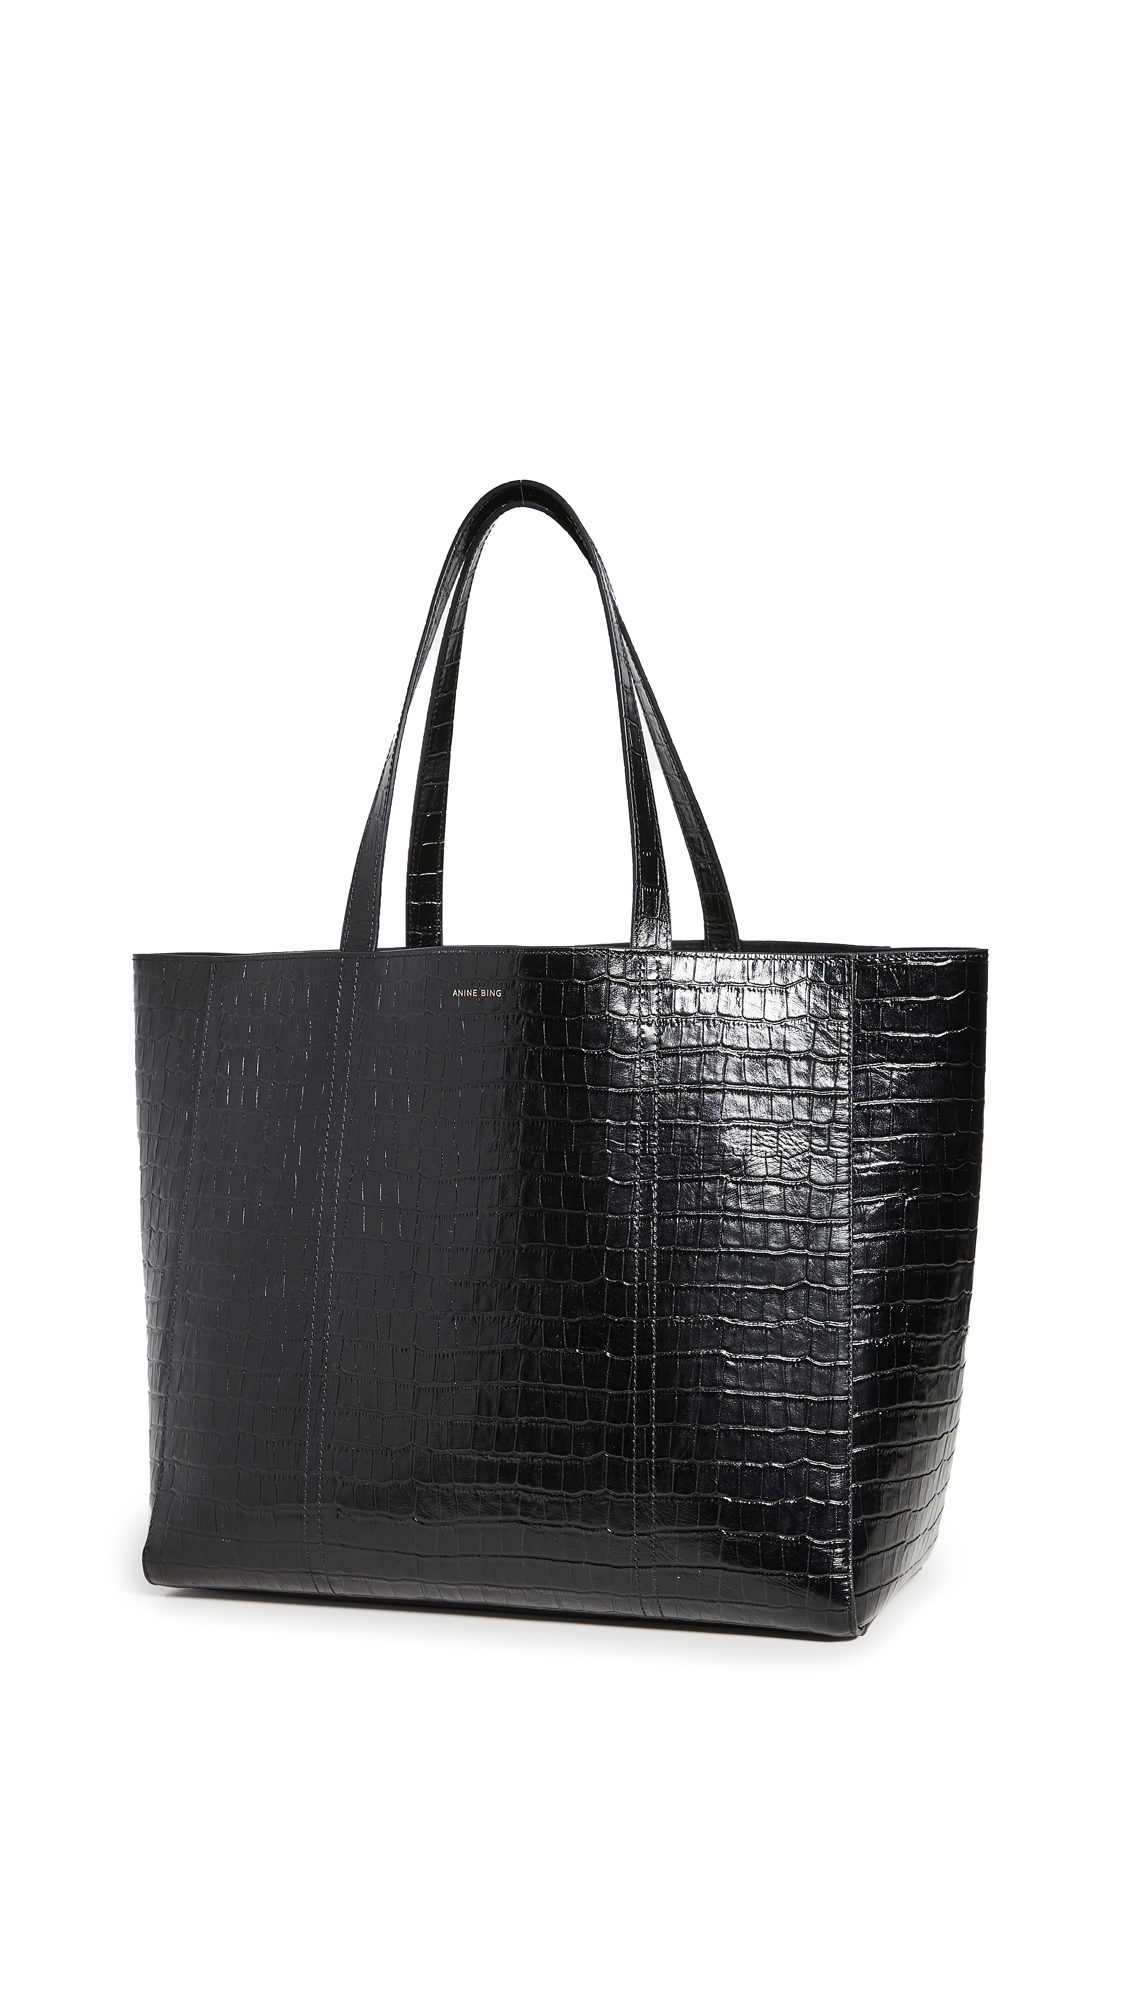 ANINE BING Croco Tote Bag